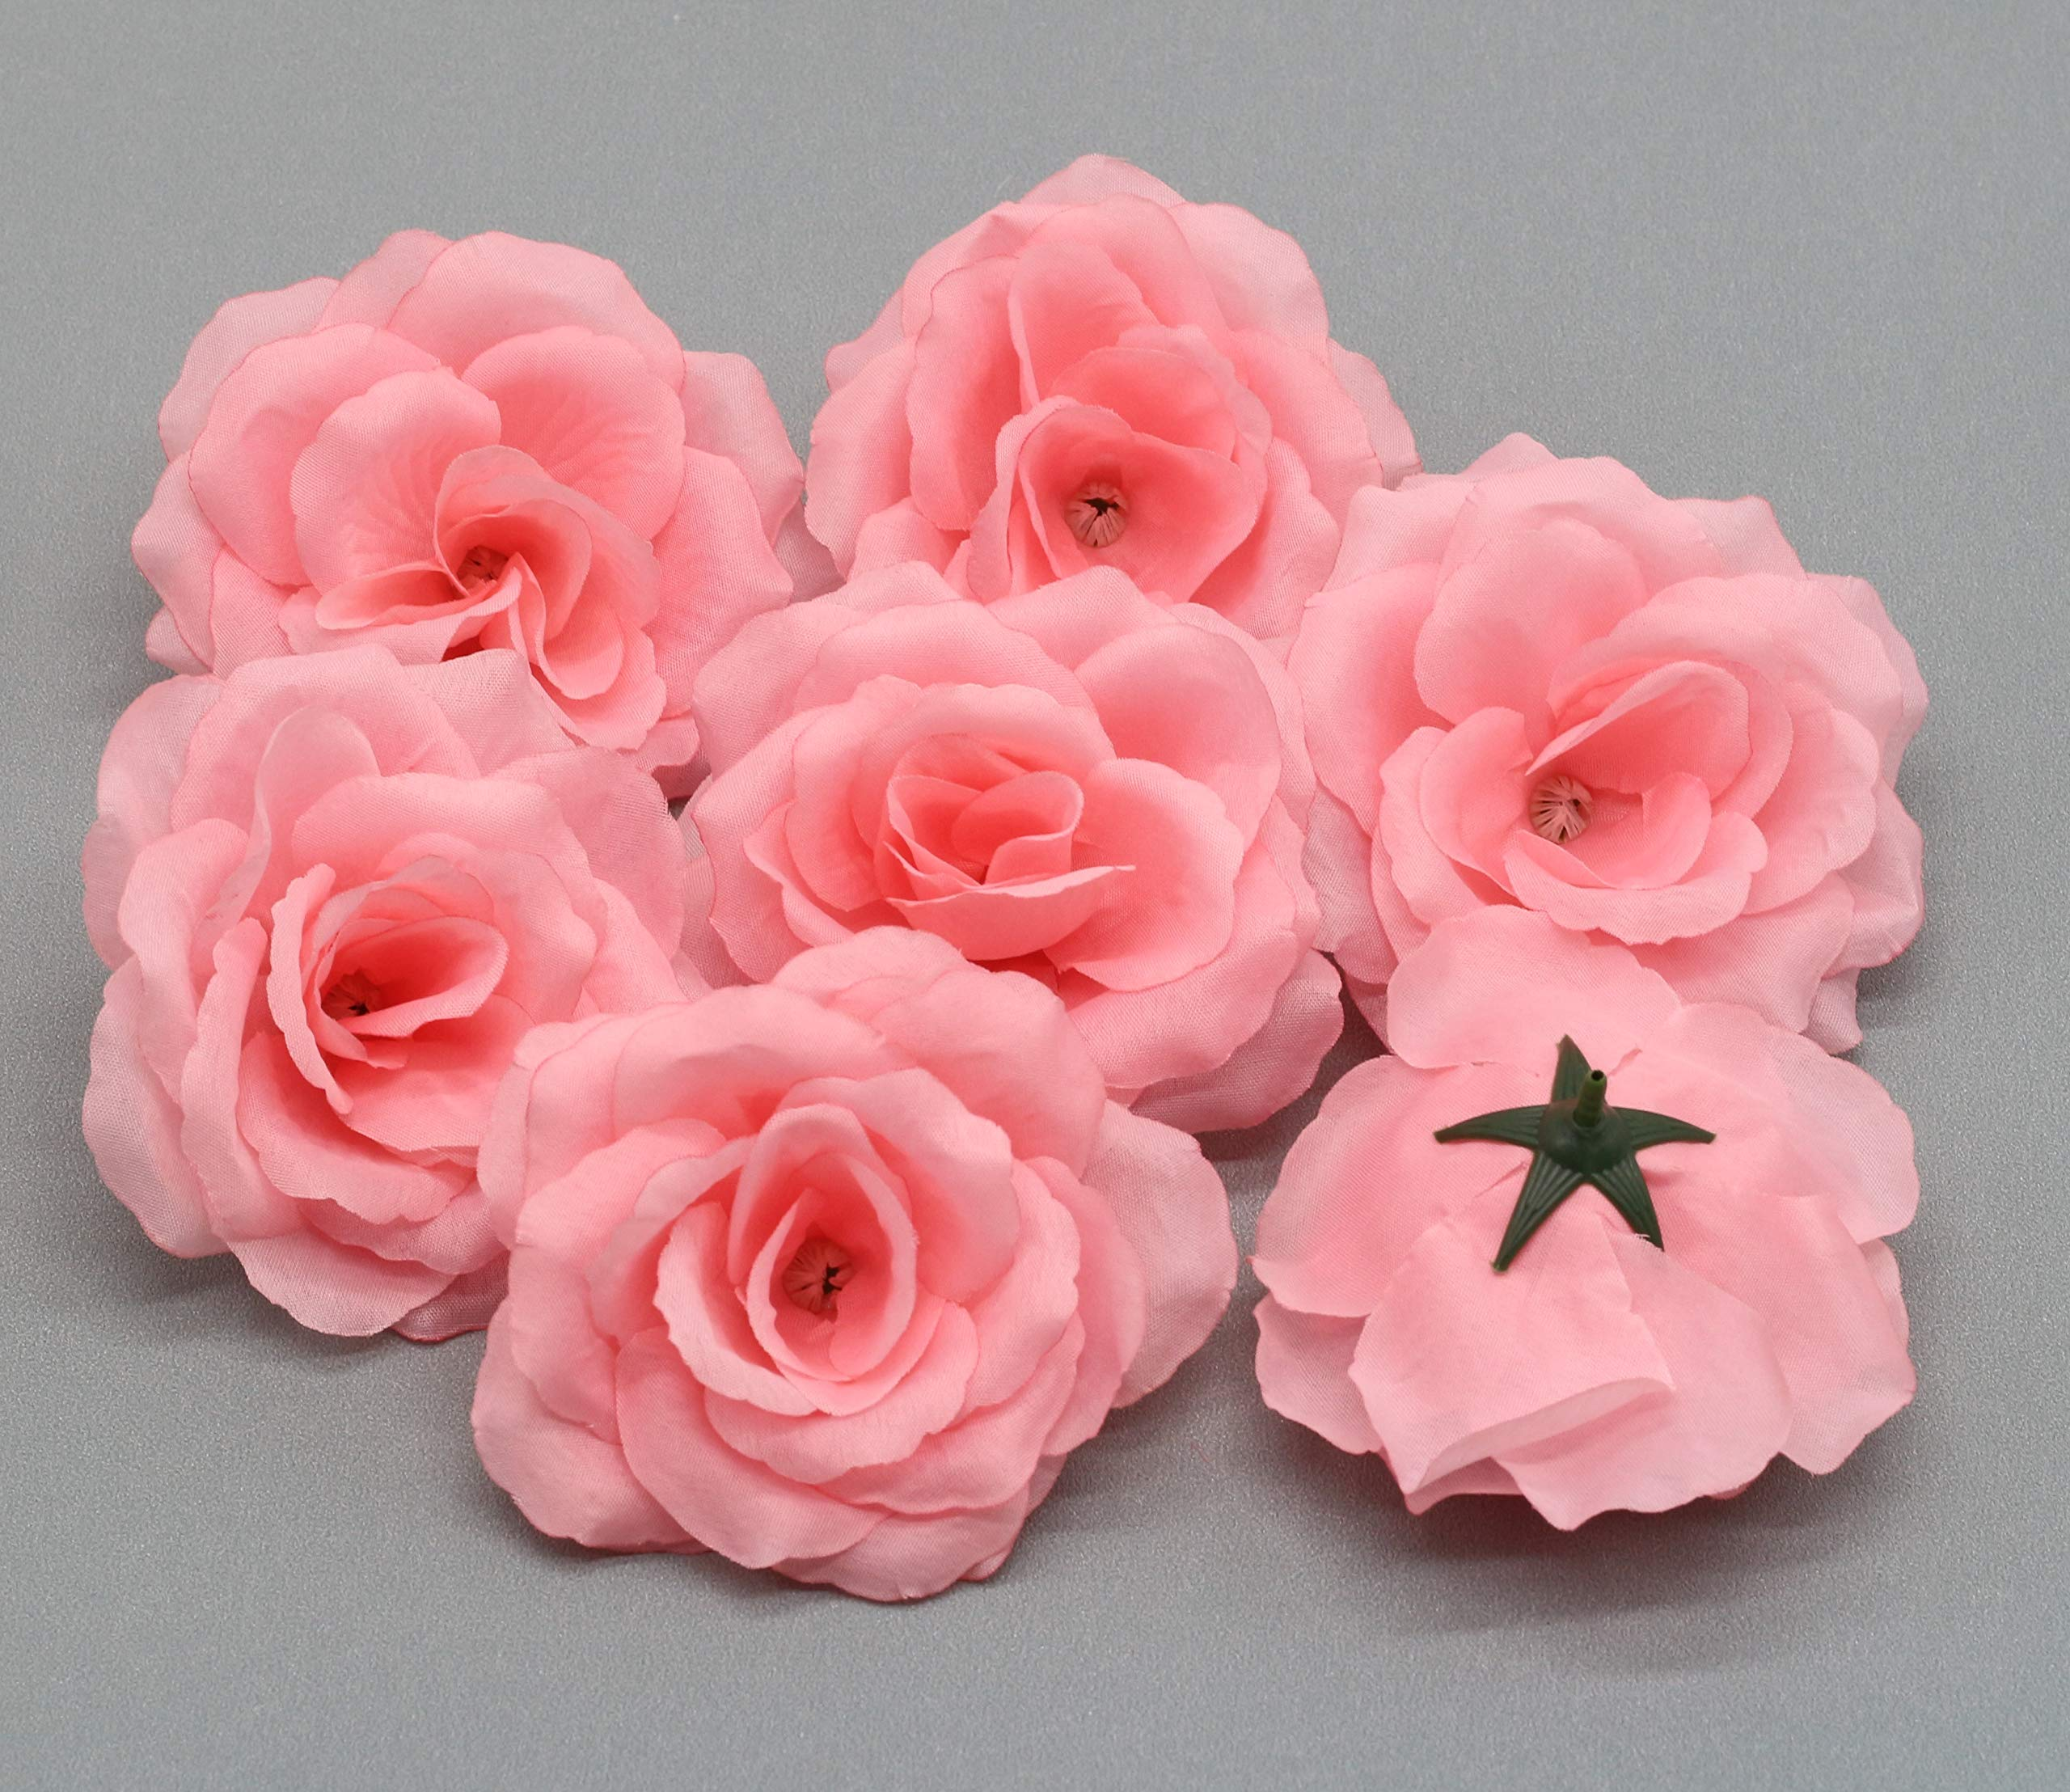 Silk Flowers Wholesale 100 Artificial Silk Rose Heads Bulk Flowers 10cm For Flower Wall Kissing Balls Wedding Supplies (Coral Pink)